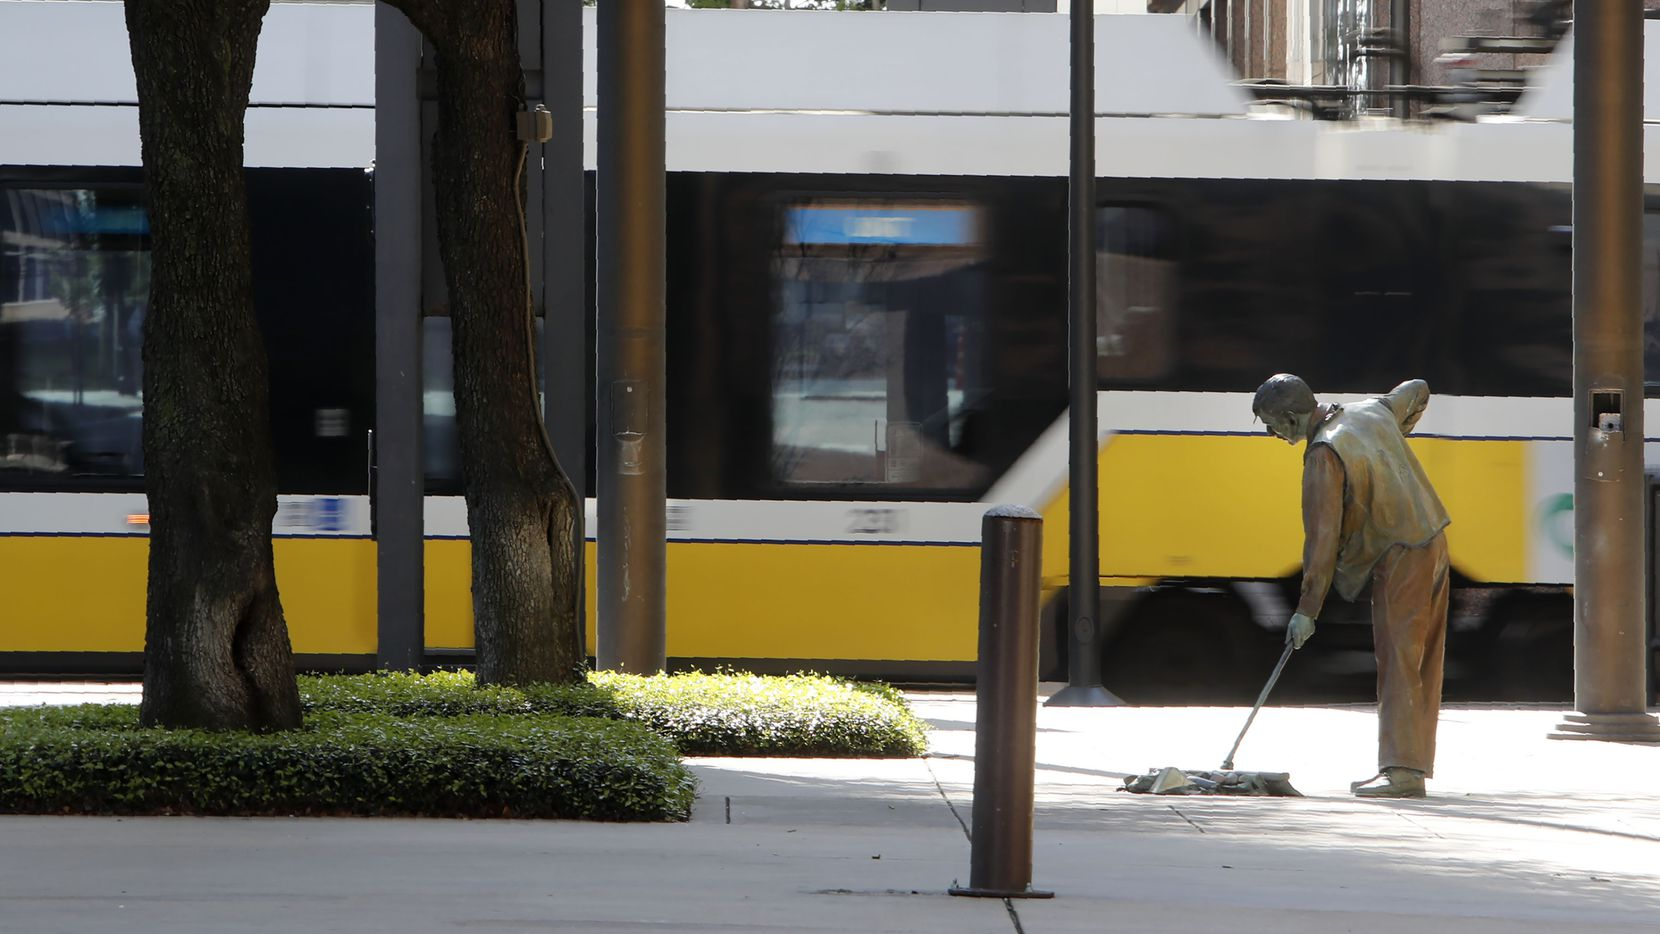 With Dallas County under a shelter in place order due to the coronavirus, a normally busy train stop sits empty in downtown Dallas, Tuesday, March 24, 2020. (AP Photo/LM Otero)